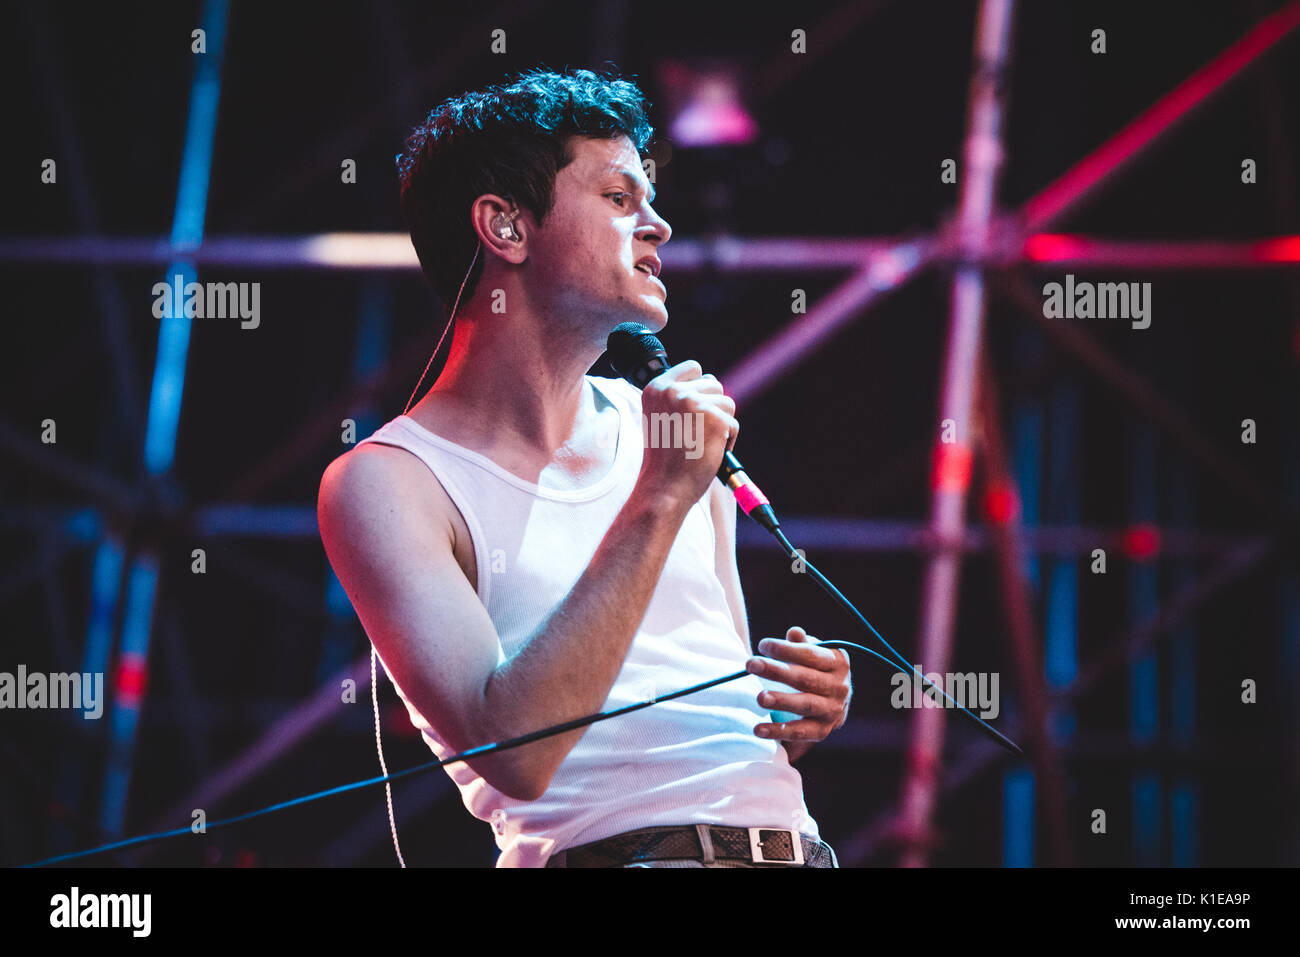 Torino, Italy. 26th Aug, 2017: Perfume Genius performing live on stage at the TODays Festival in Torino Credit: Stock Photo